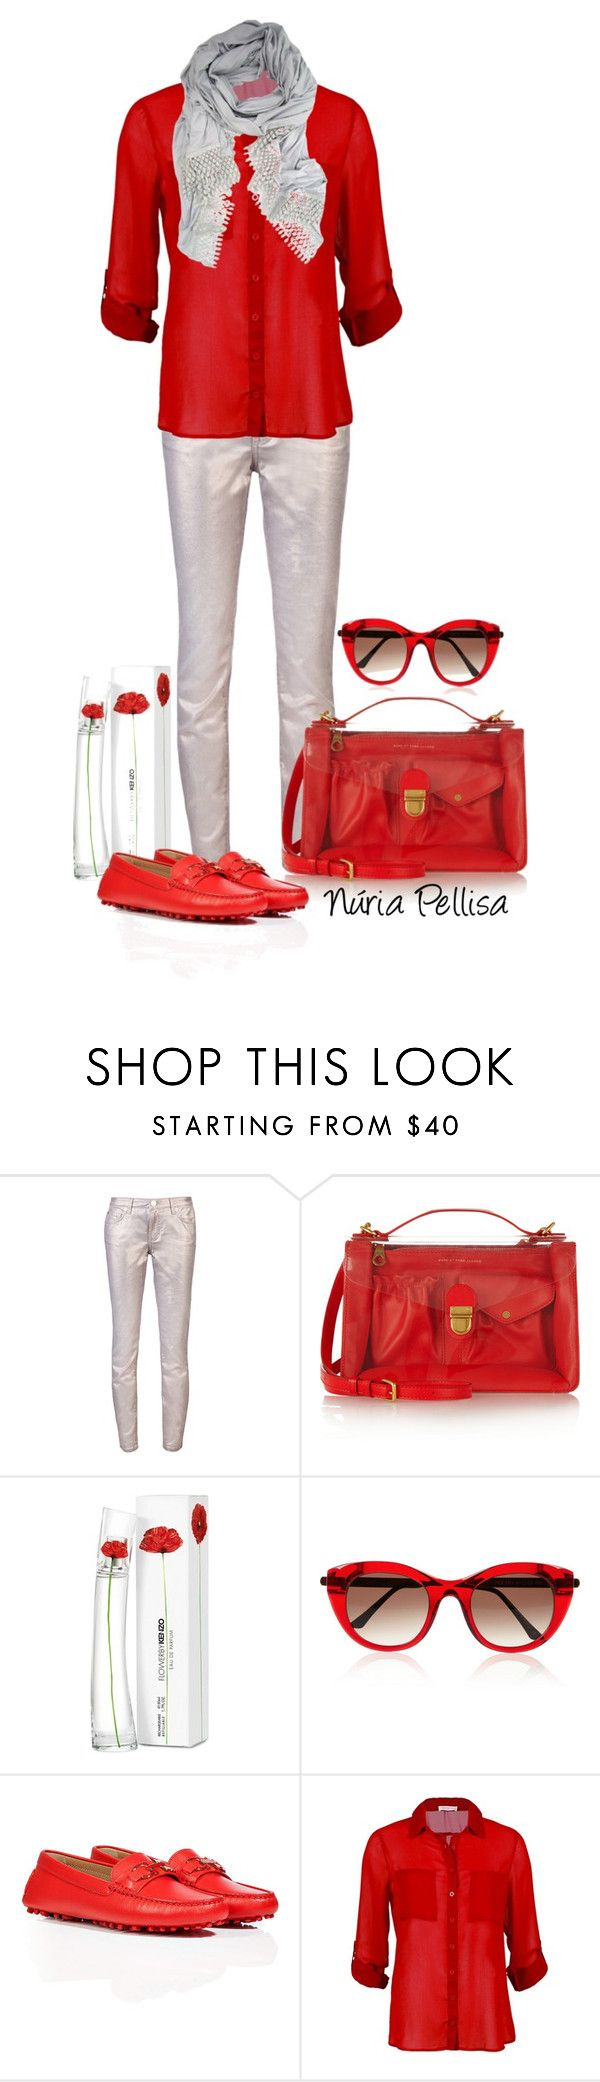 """The no heel contest"" by nuria-pellisa-salvado ❤ liked on Polyvore featuring Versace, Marc by Marc Jacobs, Kenzo, Thierry Lasry and Salvatore Ferragamo"